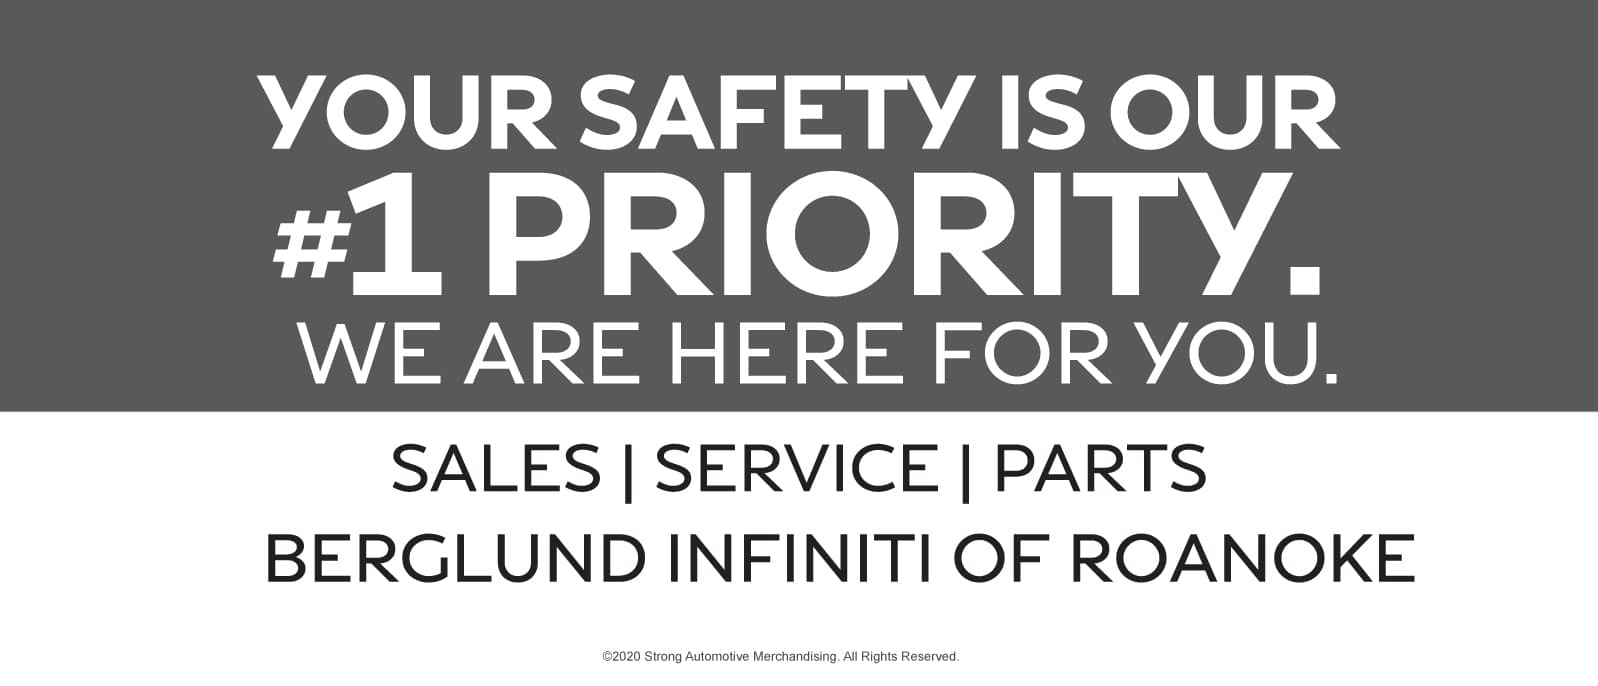 YOUR SAFETY IS OUR #1 PRIORITY. WE ARE HERE FOR YOU. SALES | SERVICE | PARTS